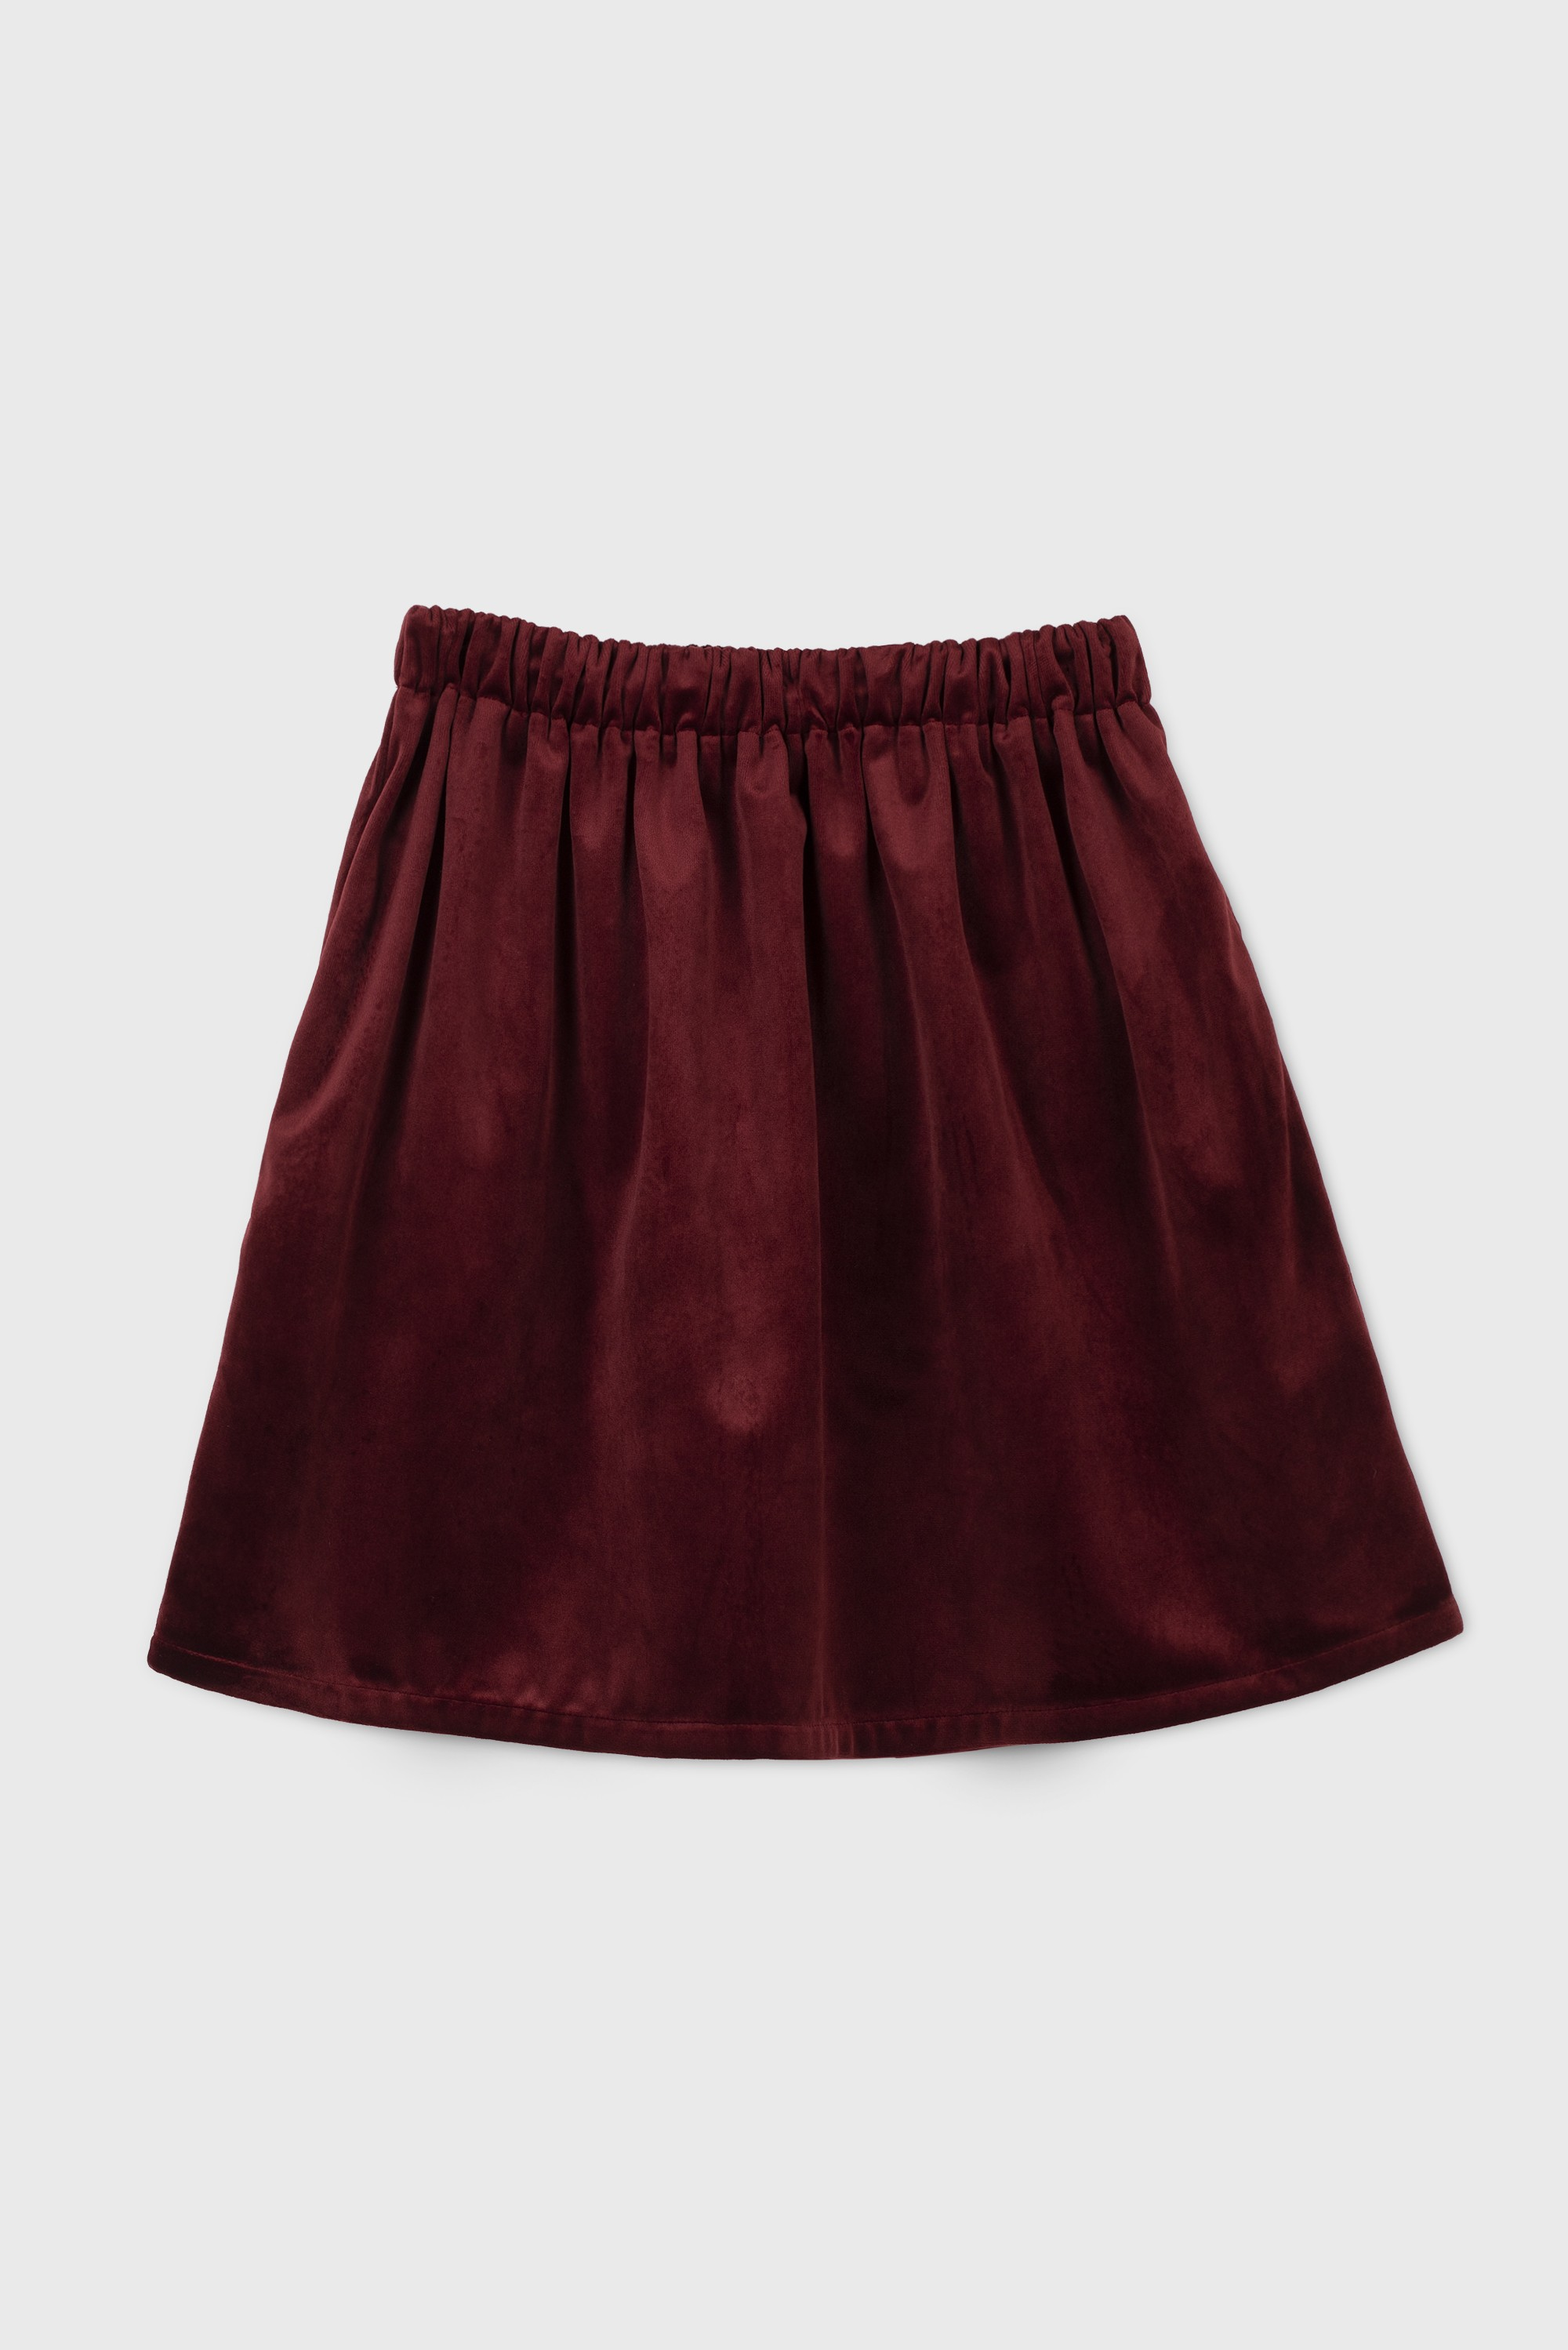 VELVET SHIRRED SKIRT